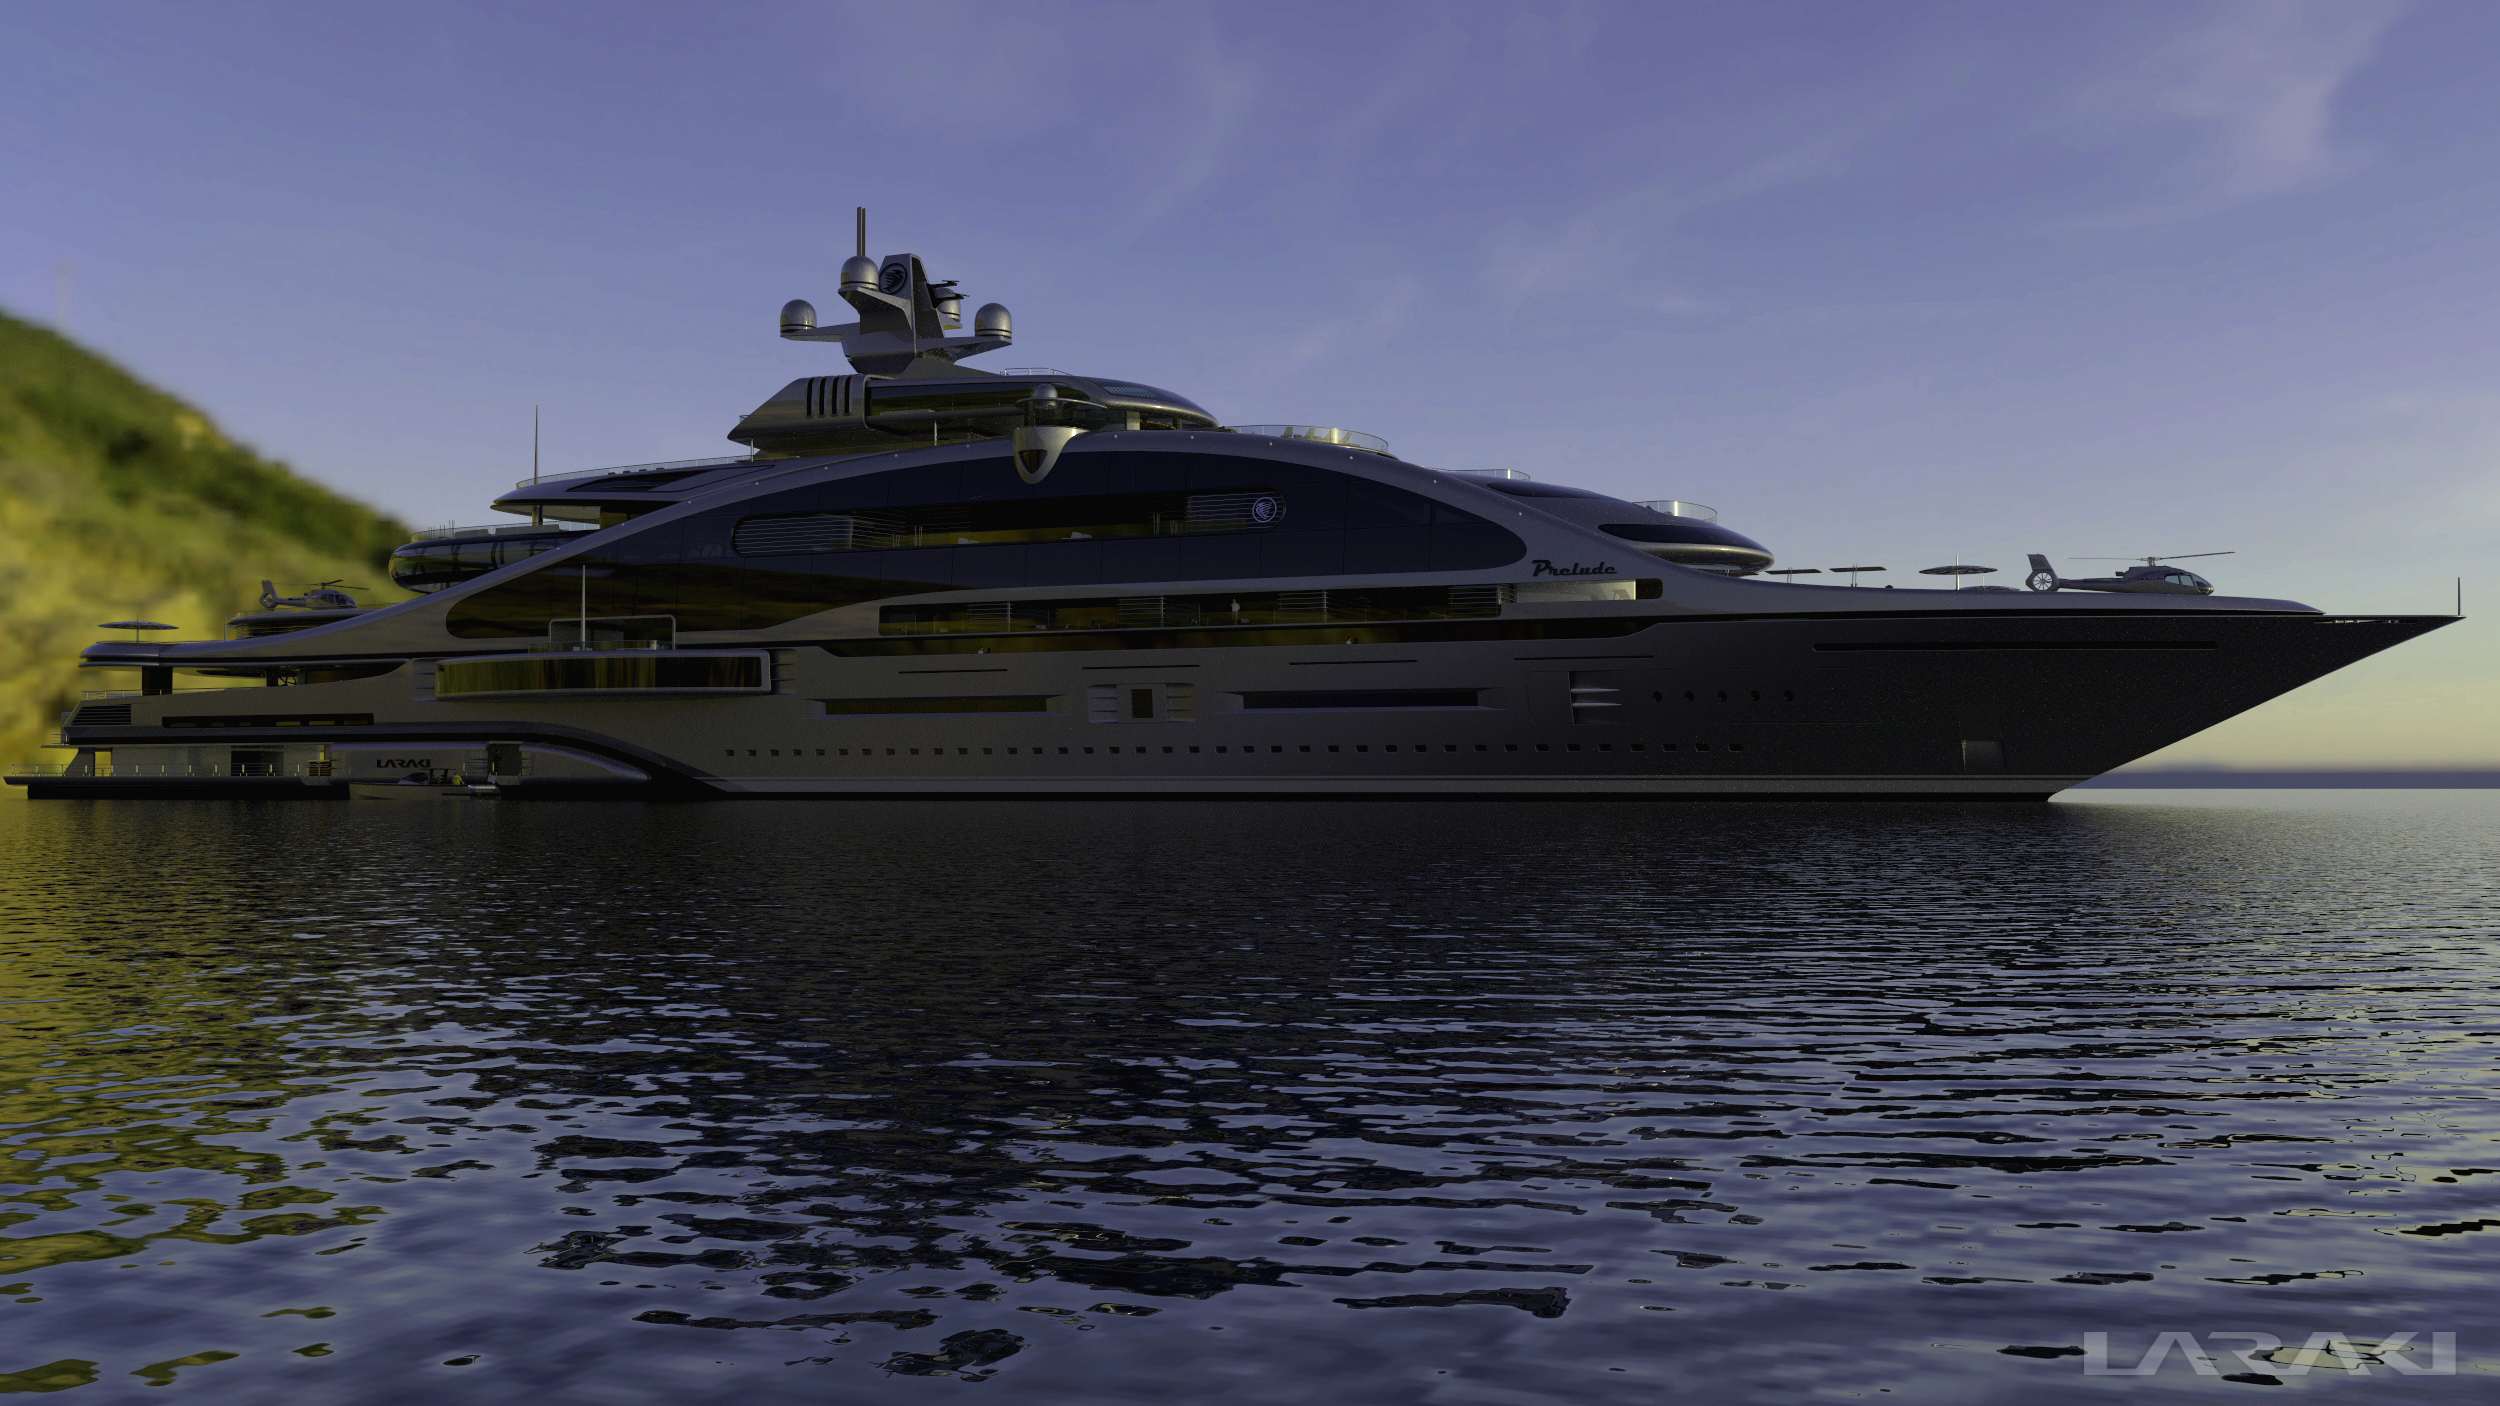 This Is Very Useful What I Am Hoping Is That The Circlar Bumper - Giga yacht takes luxury oil tanker sized extreme